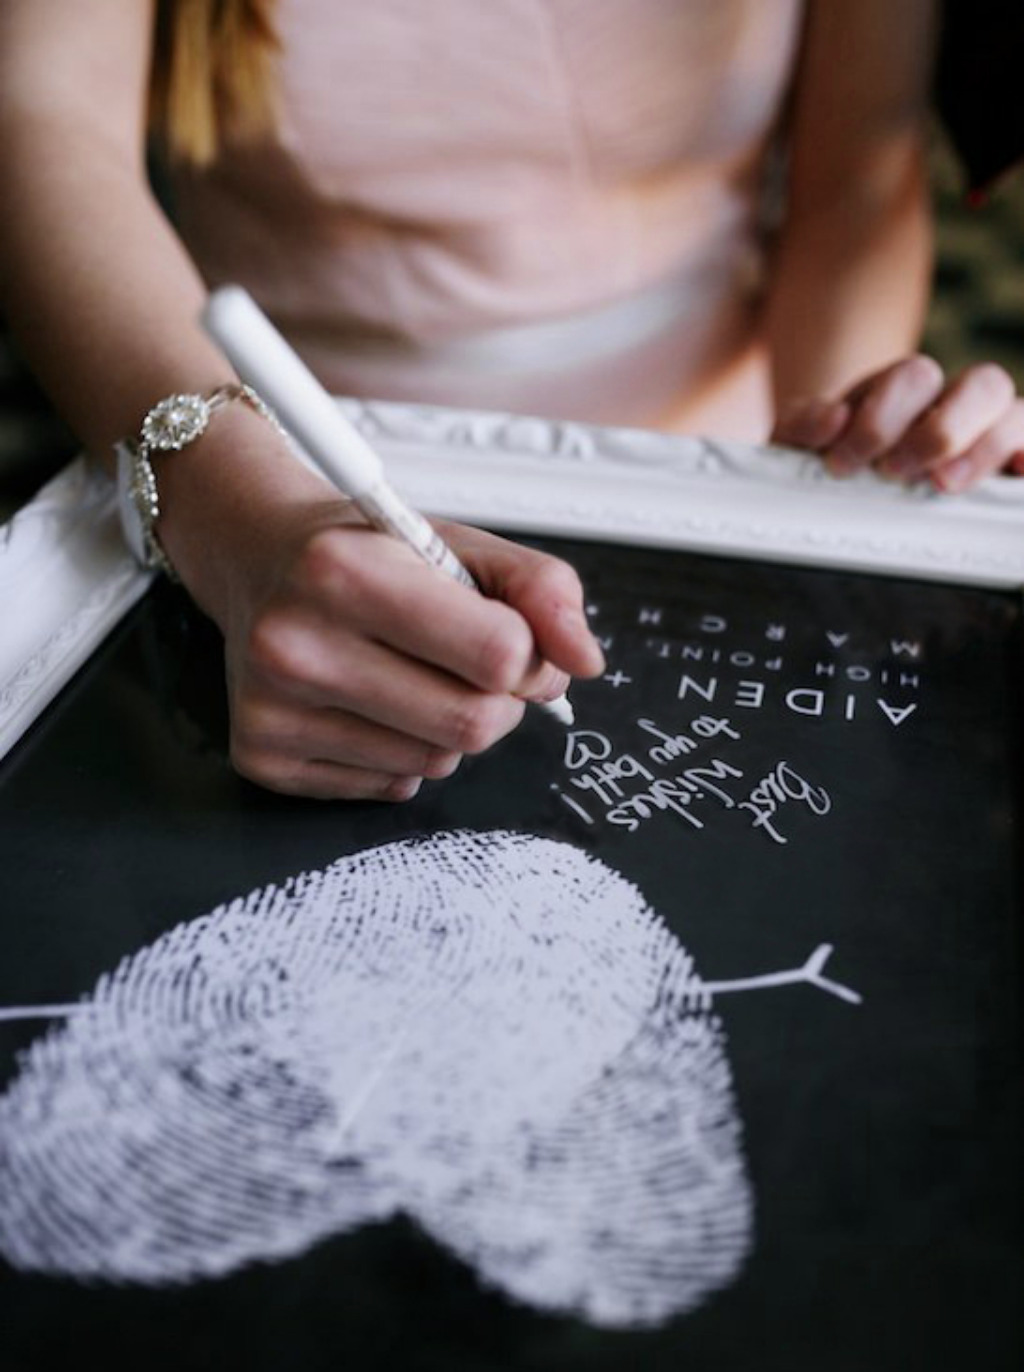 Don't forget the guest book! This alternative to a traditional guest book is made with your own fingerprints - truly one-of-a-kind